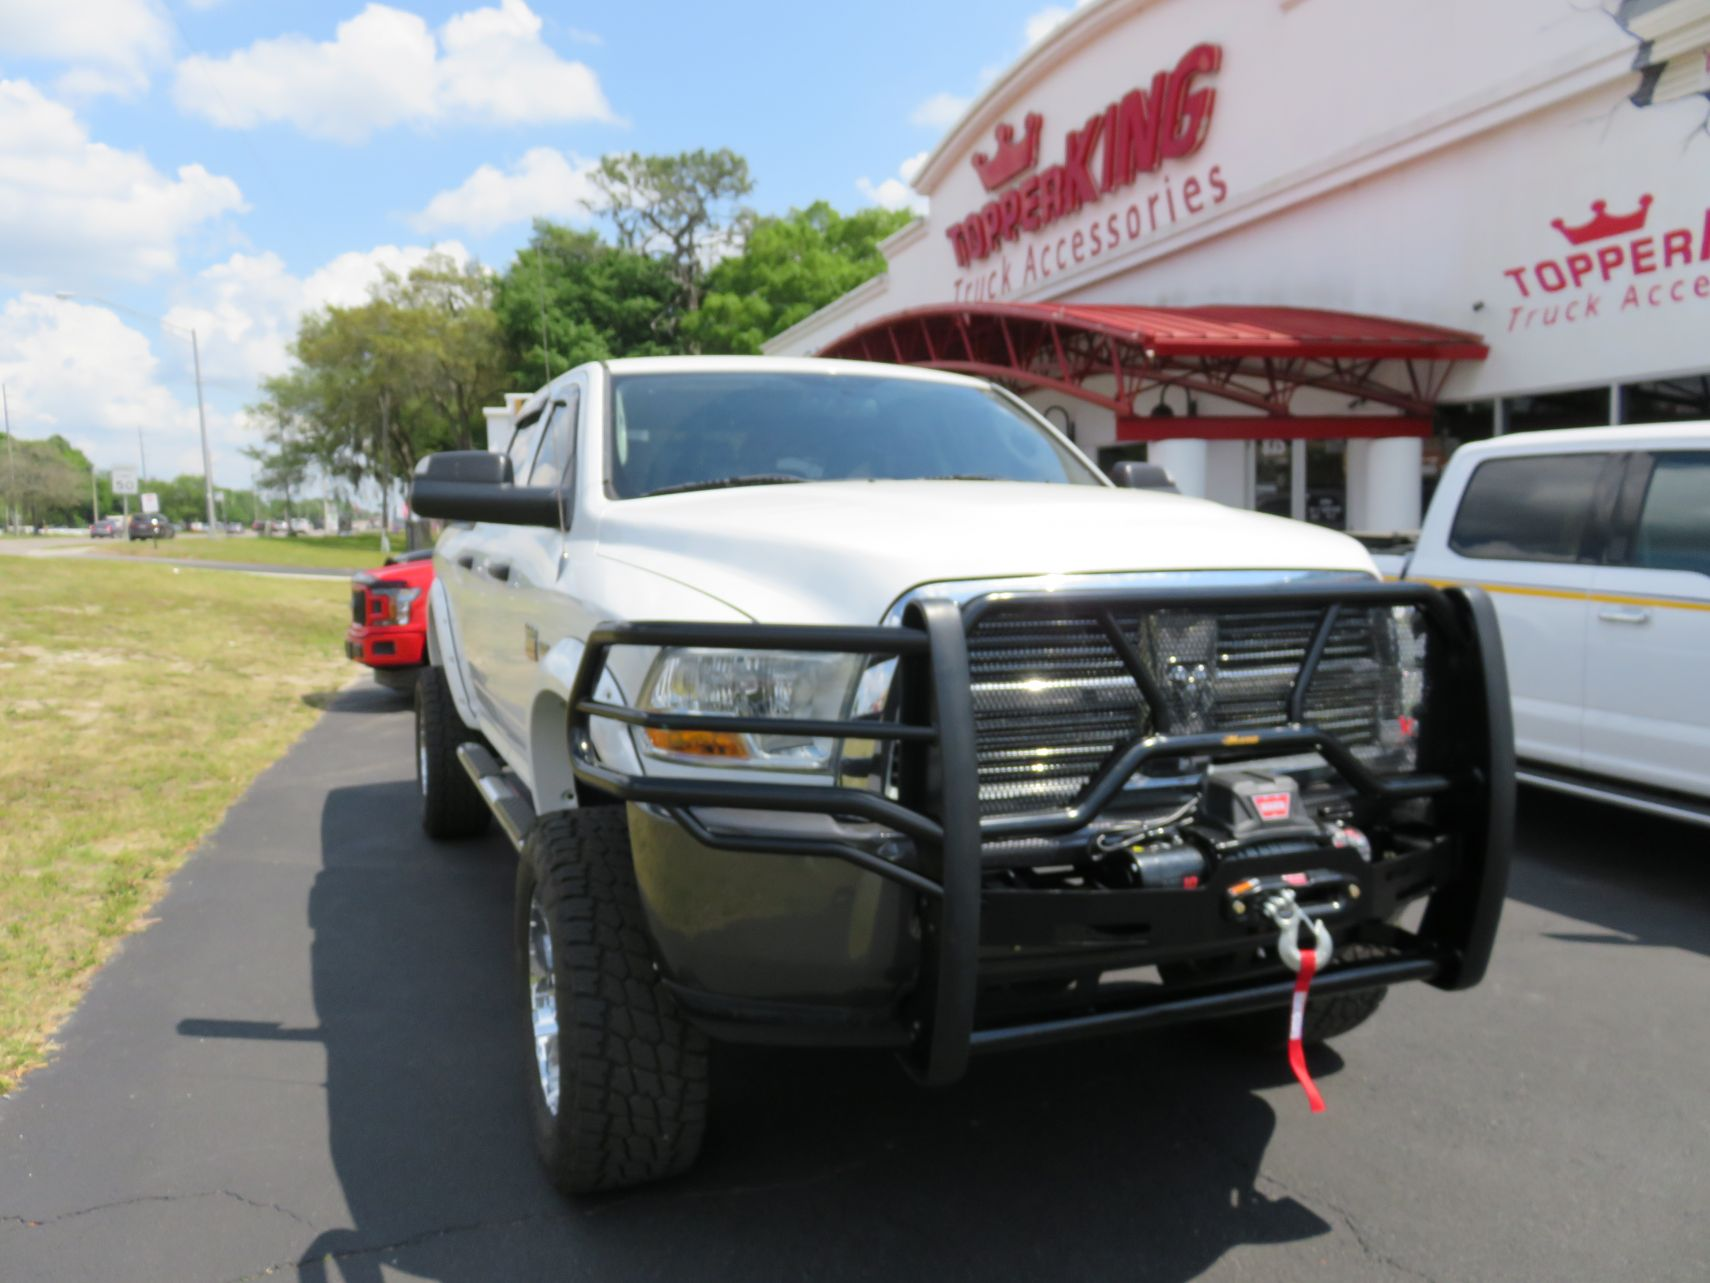 2011 White Dodge Ram Grill Guard, Winch, Vent Visors, Nerf Bars, Hitch, Tool Box by TopperKING in Brandon, FL 813-689-2449 or Clearwater, FL 727-530-9066.